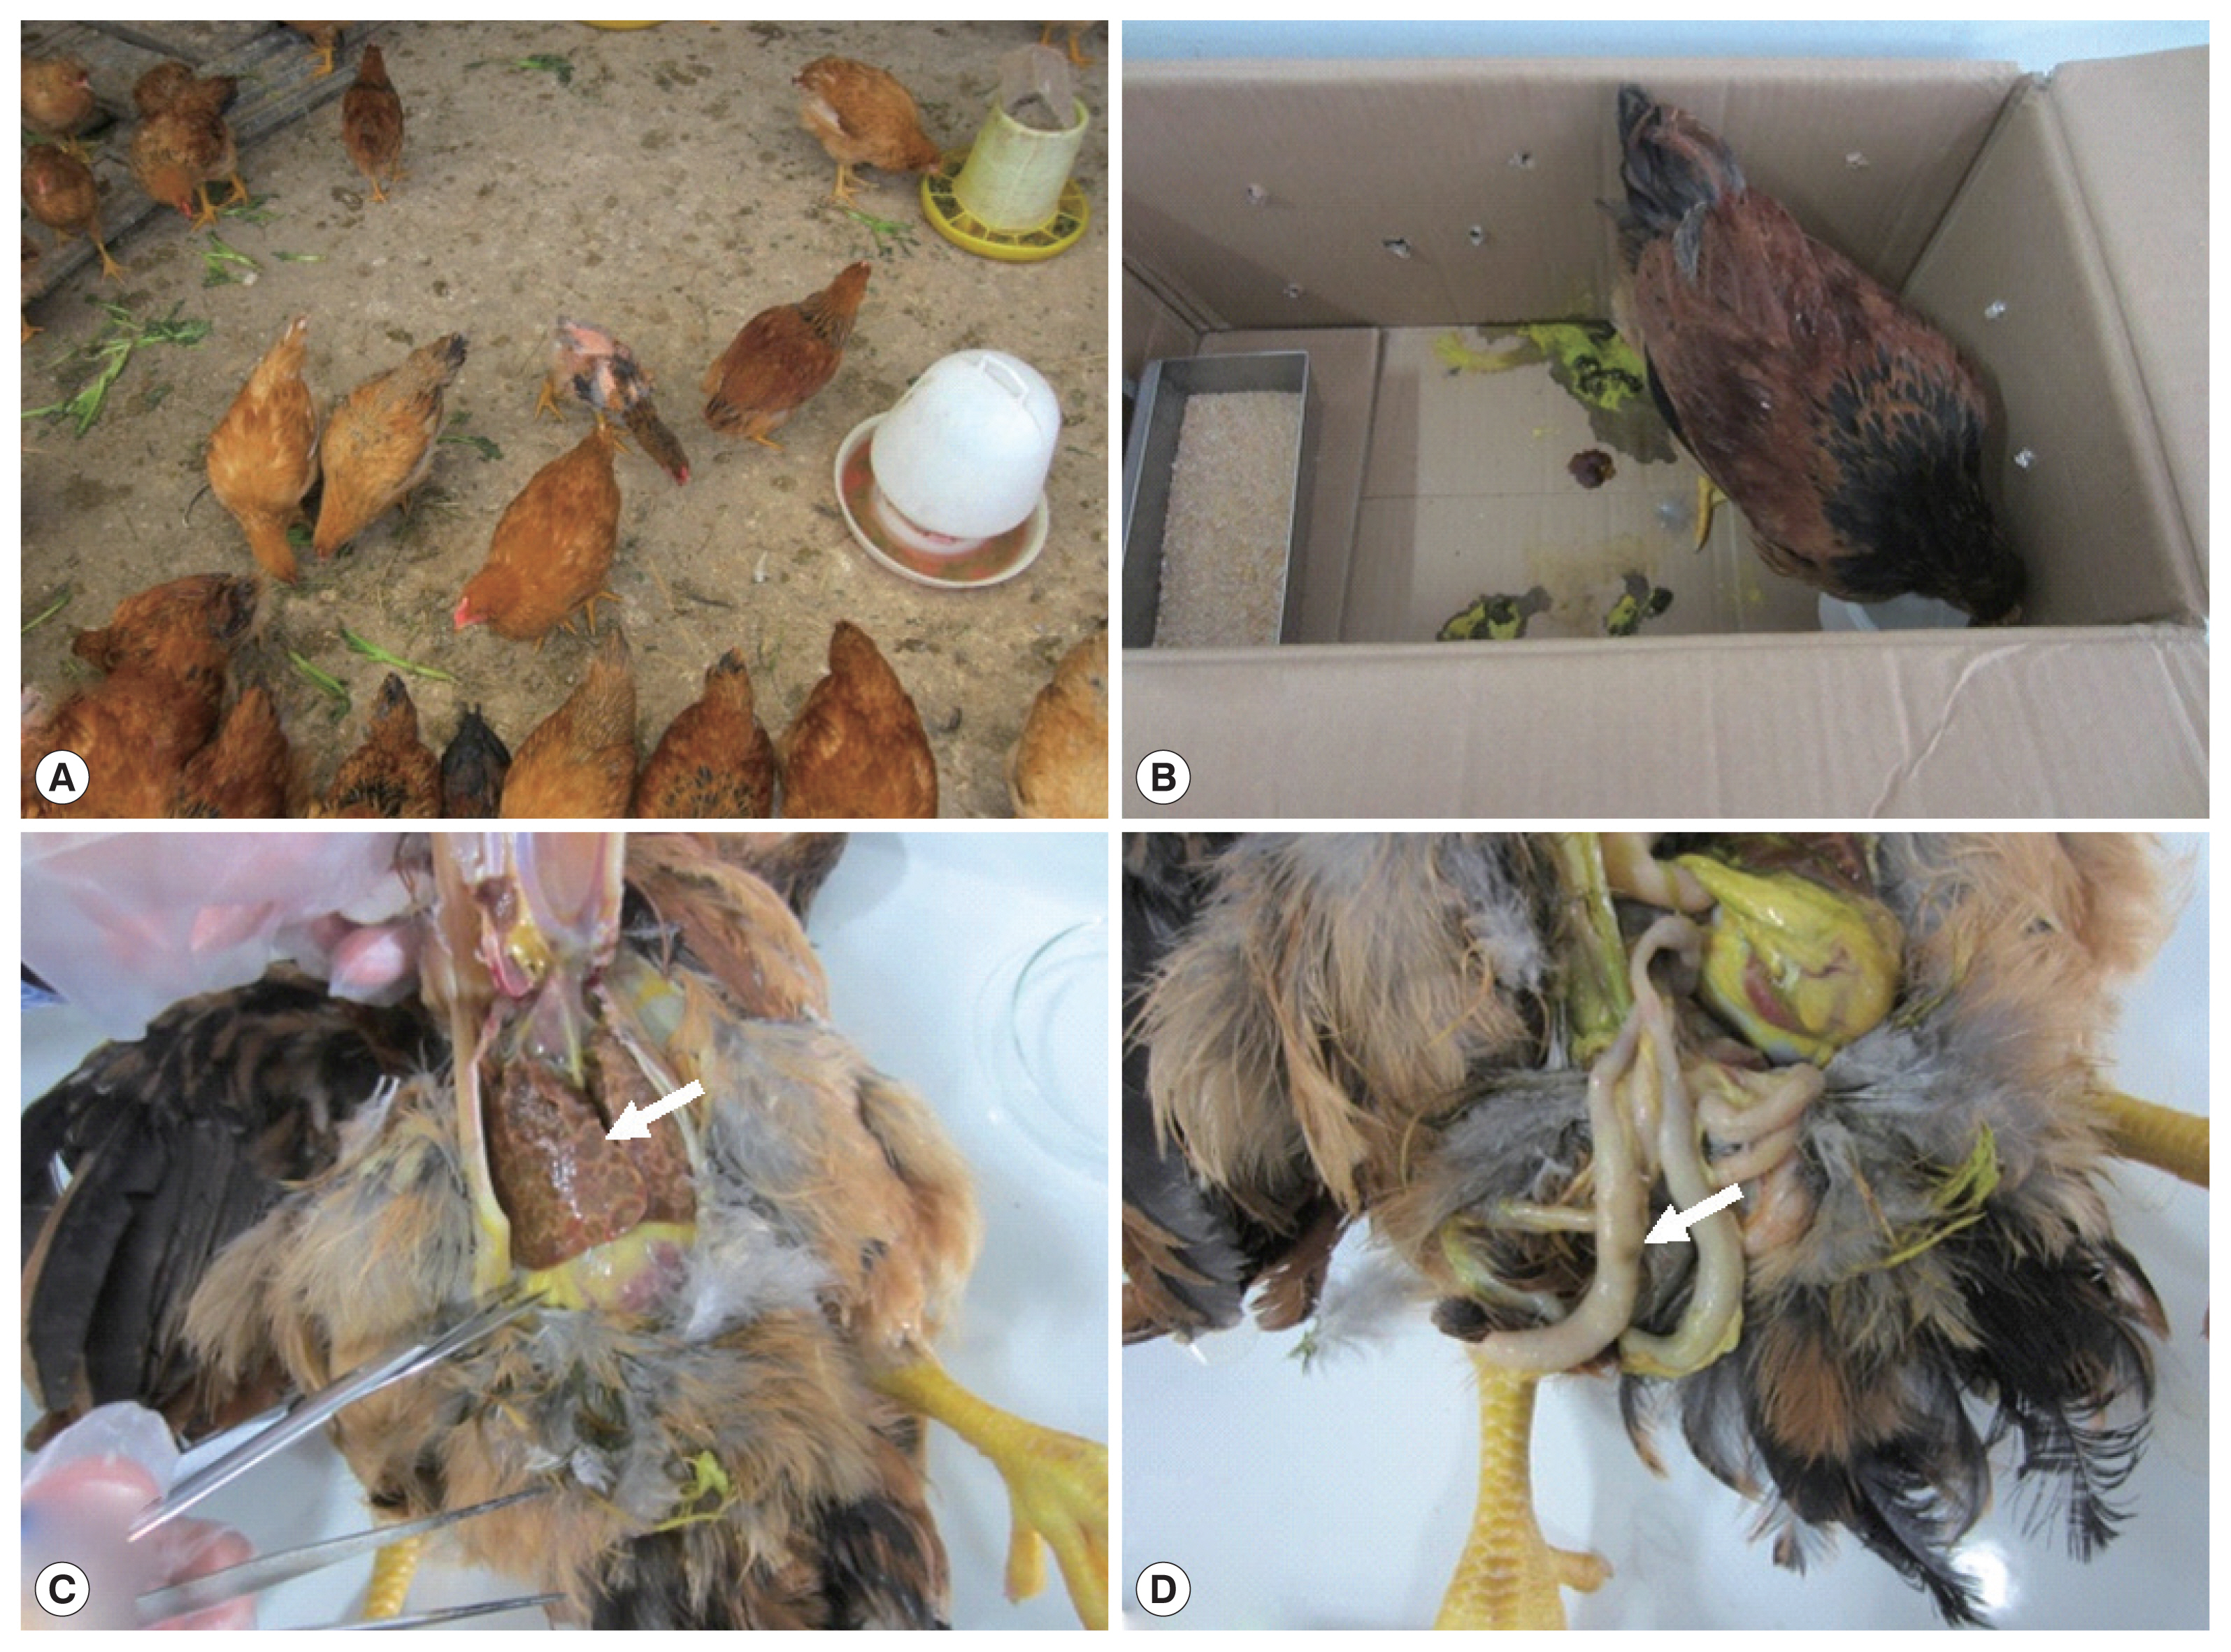 An Outbreak of Histomoniasis in Backyard Sanhuang Chickens